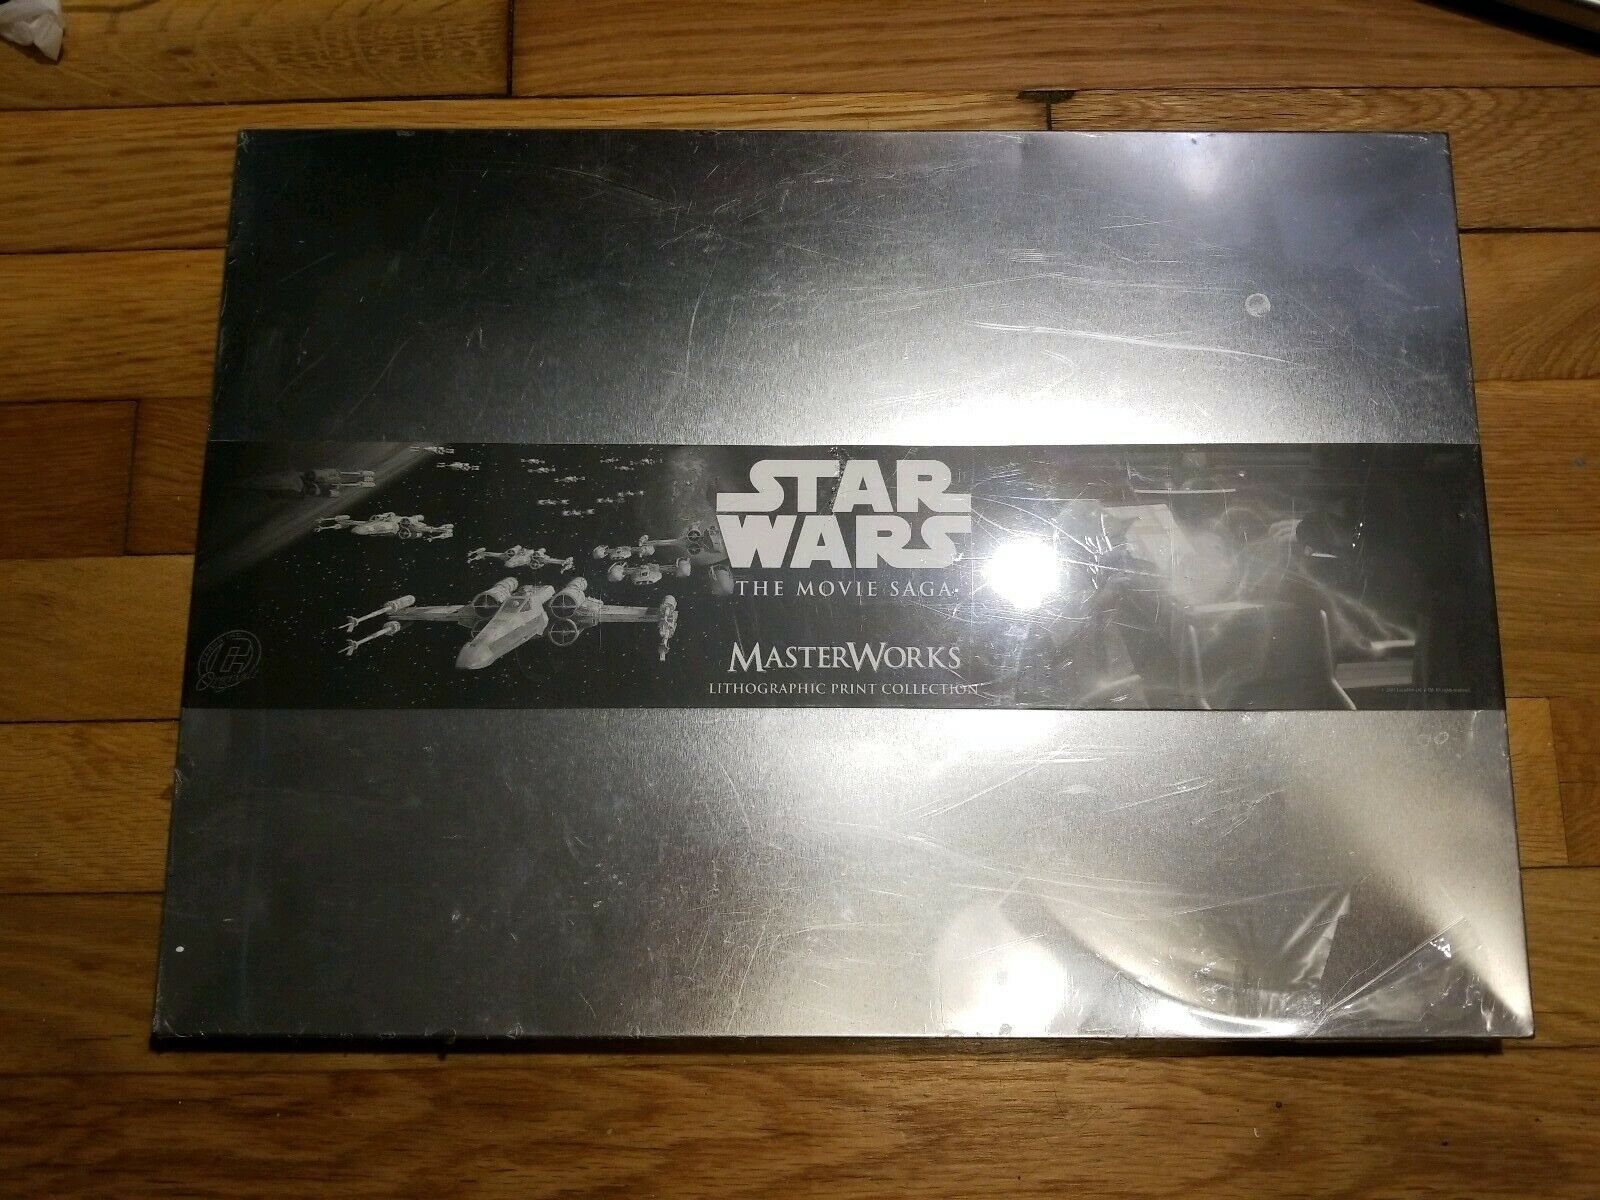 Brand New Star Wars The Movie Saga Master Works Lithographic Print Collection